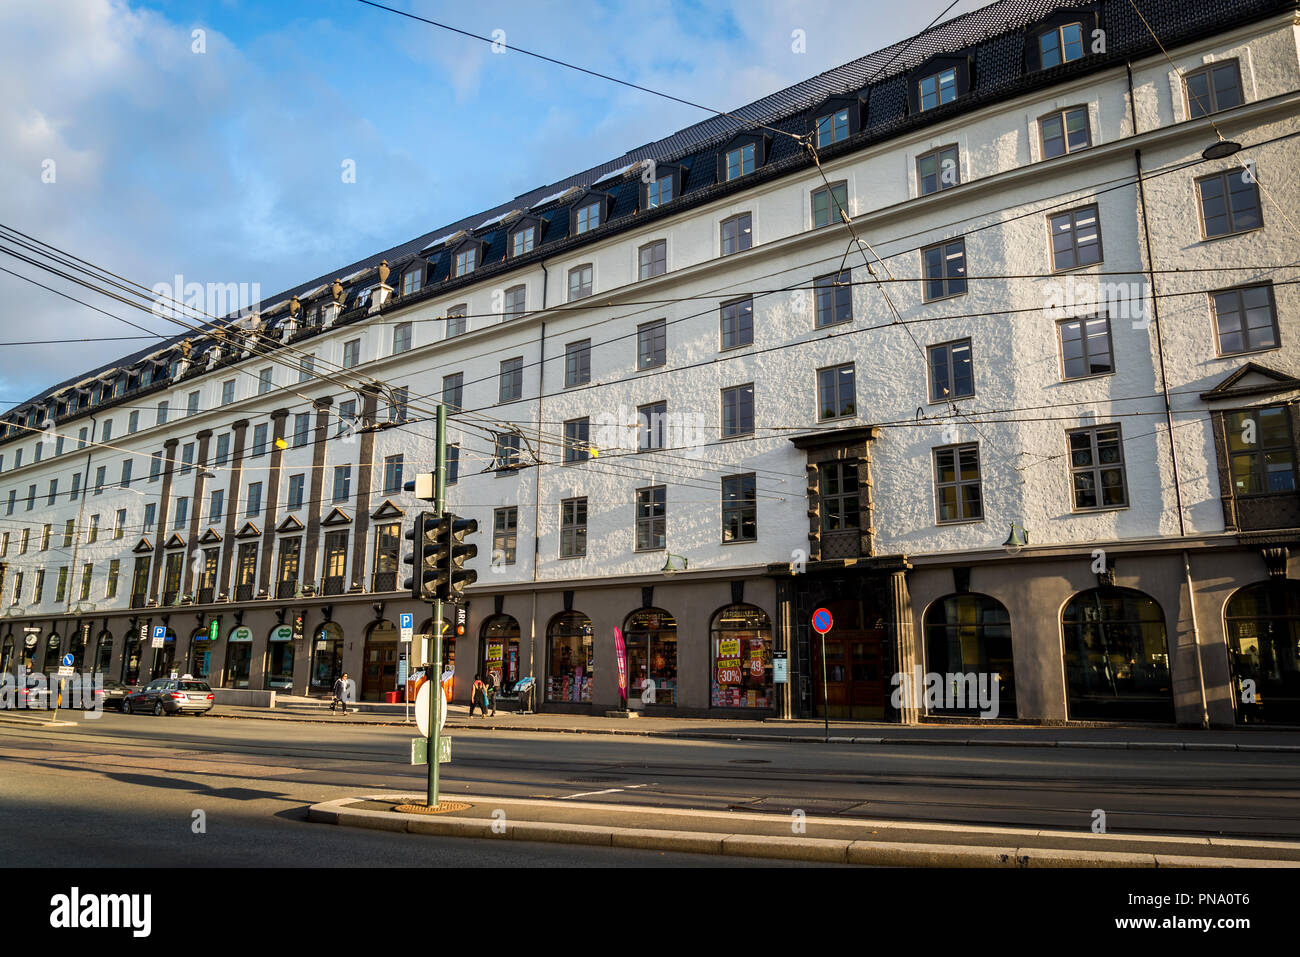 Buildings in central Oslo, Norway - Stock Image